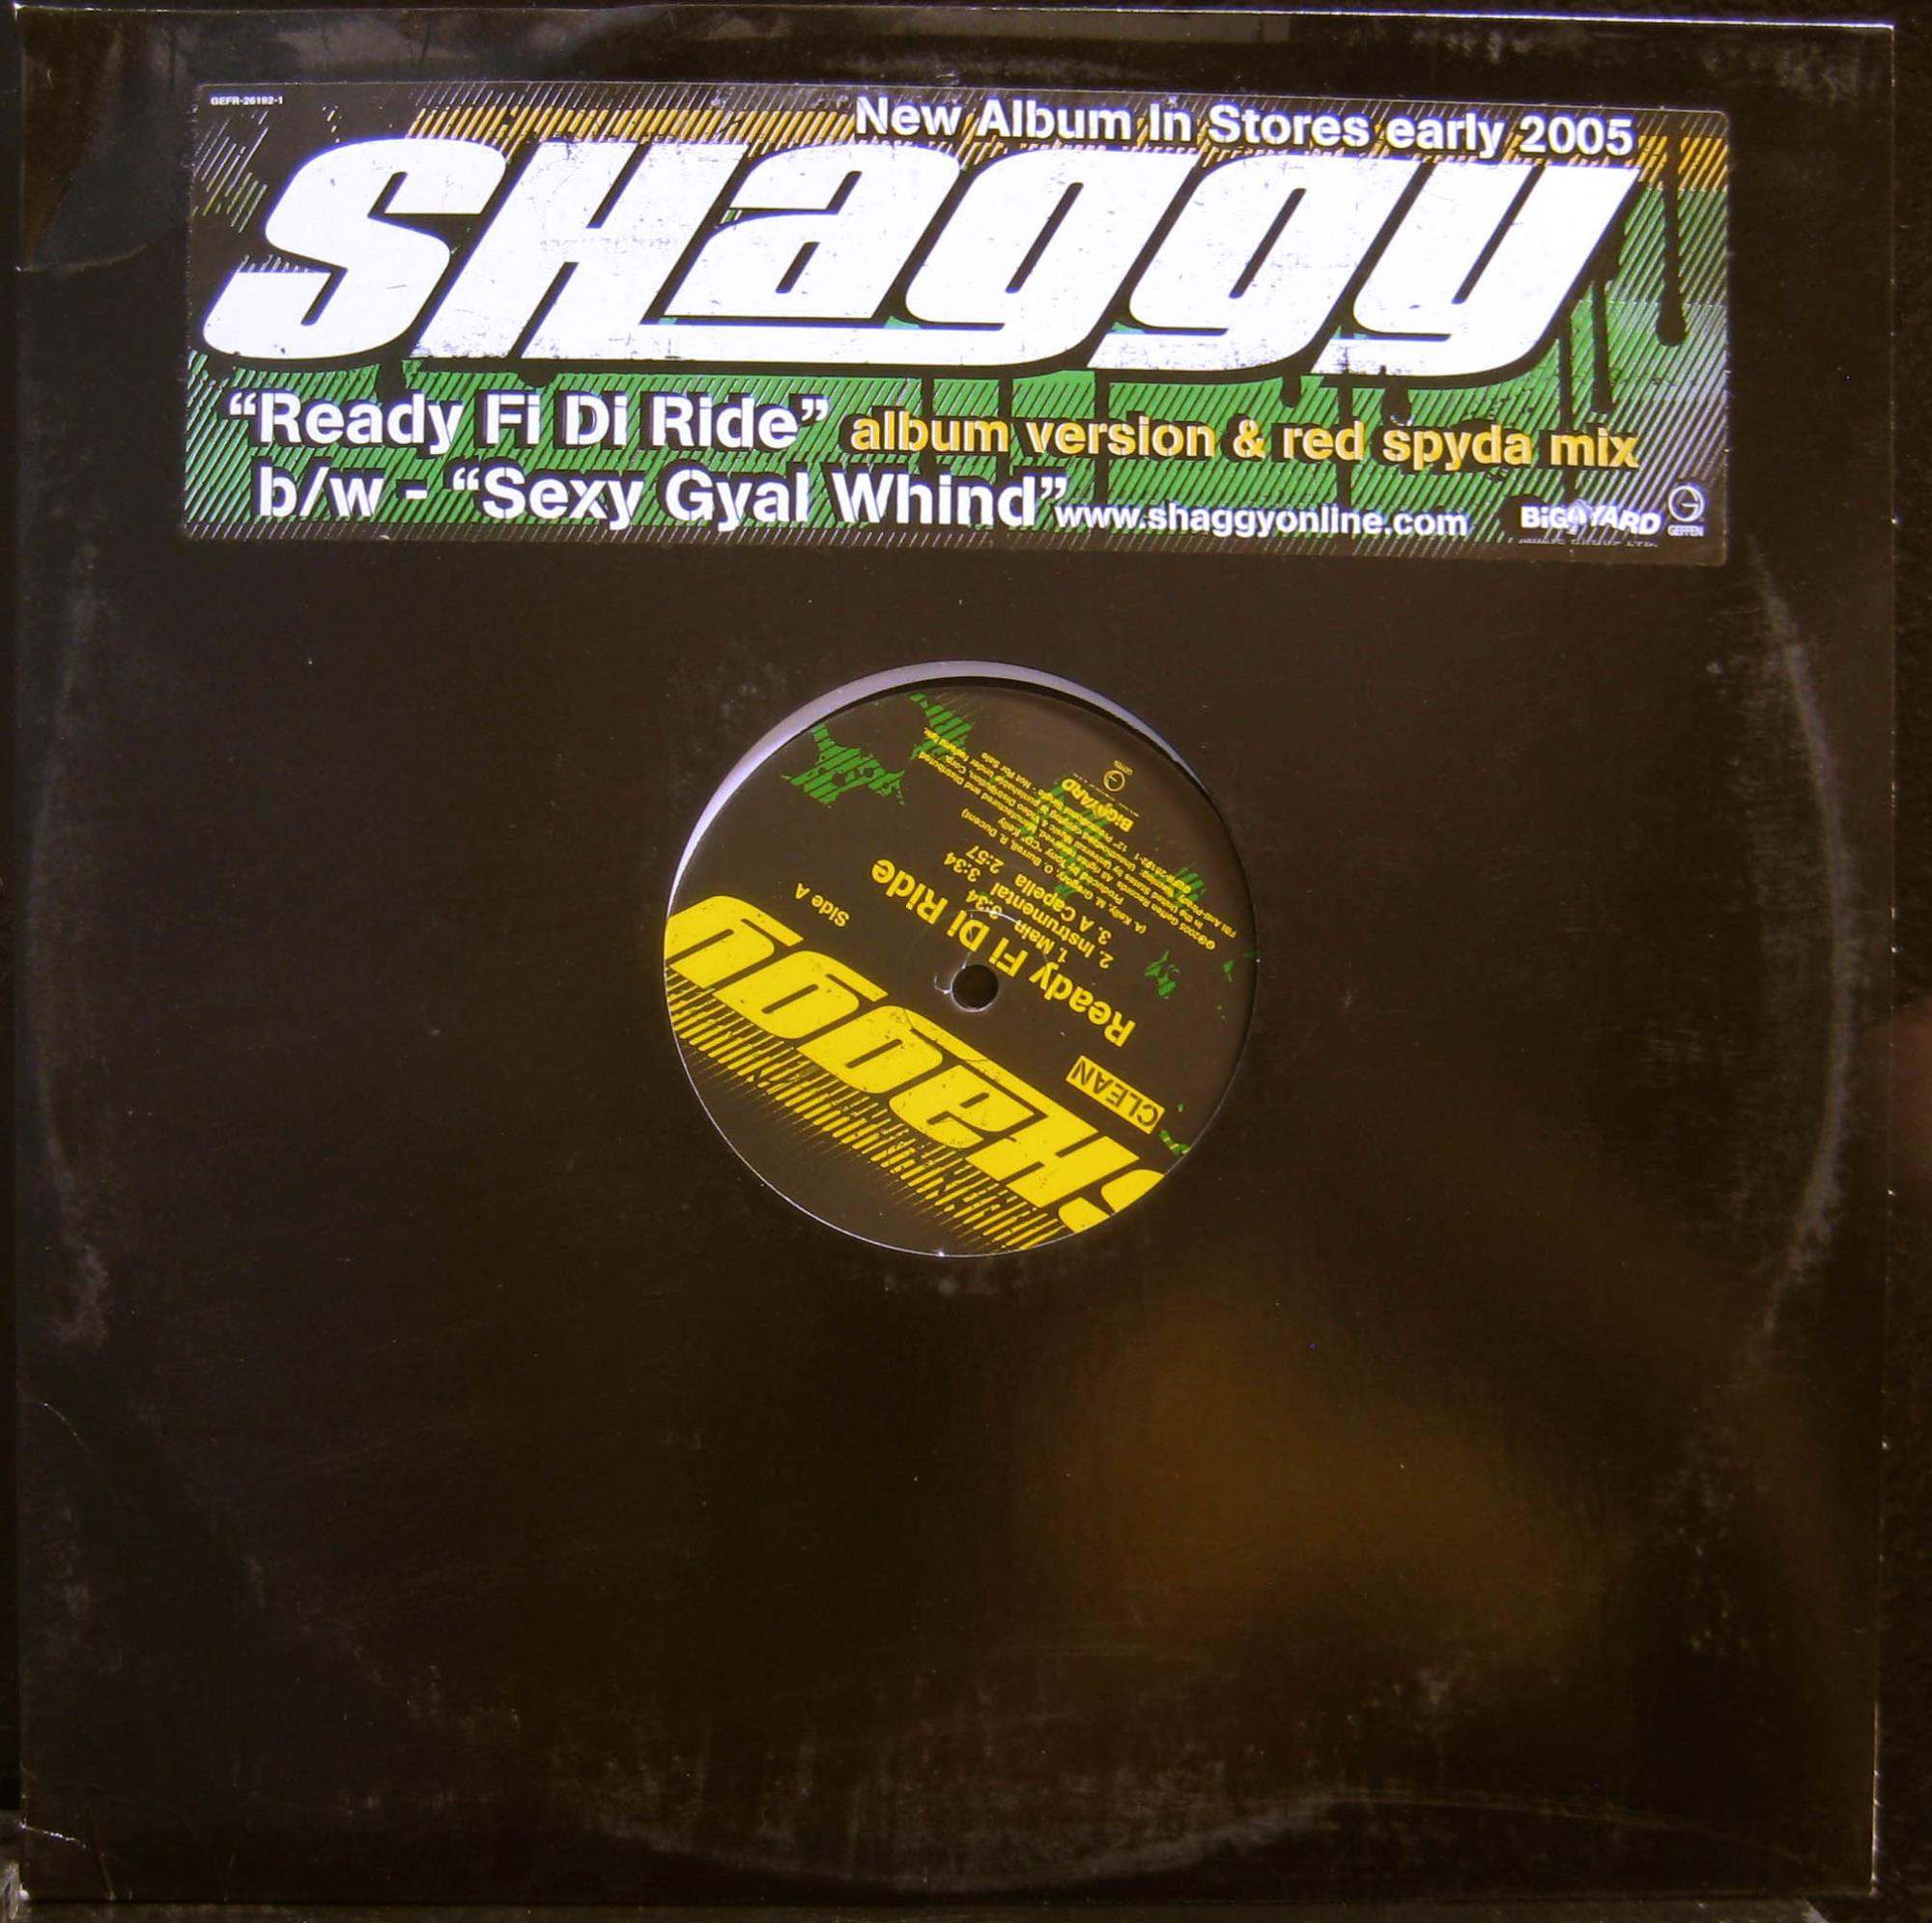 "Shaggy - Ready Fi Di Ride 12"" Mint- Promo GEFR 26192 1 Vinyl 2005 Record"